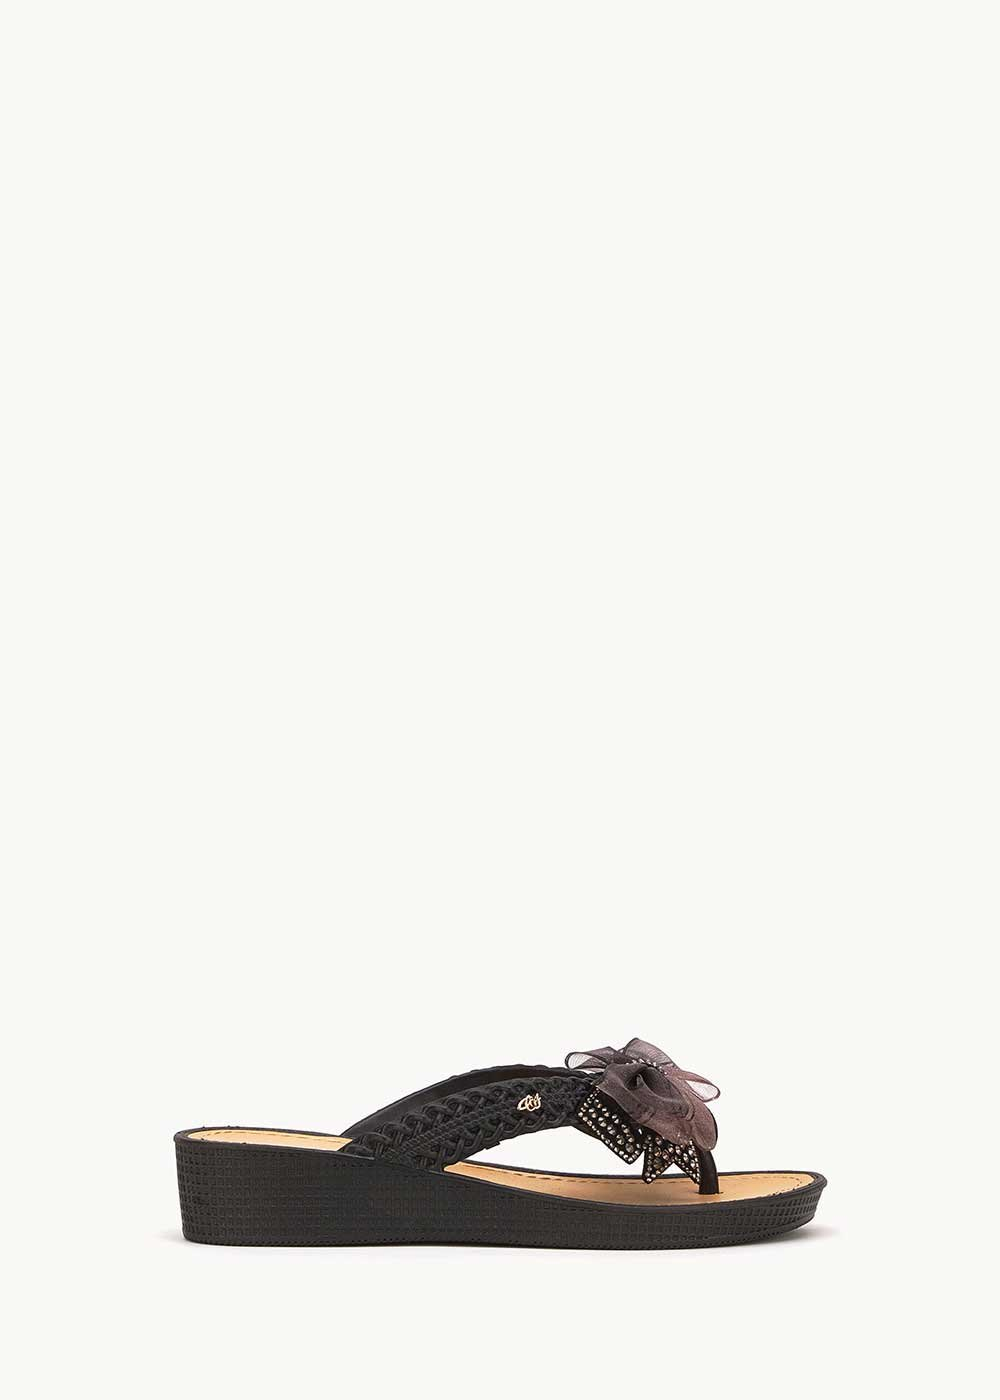 Sukie flip flops with bow detail - Black - Woman